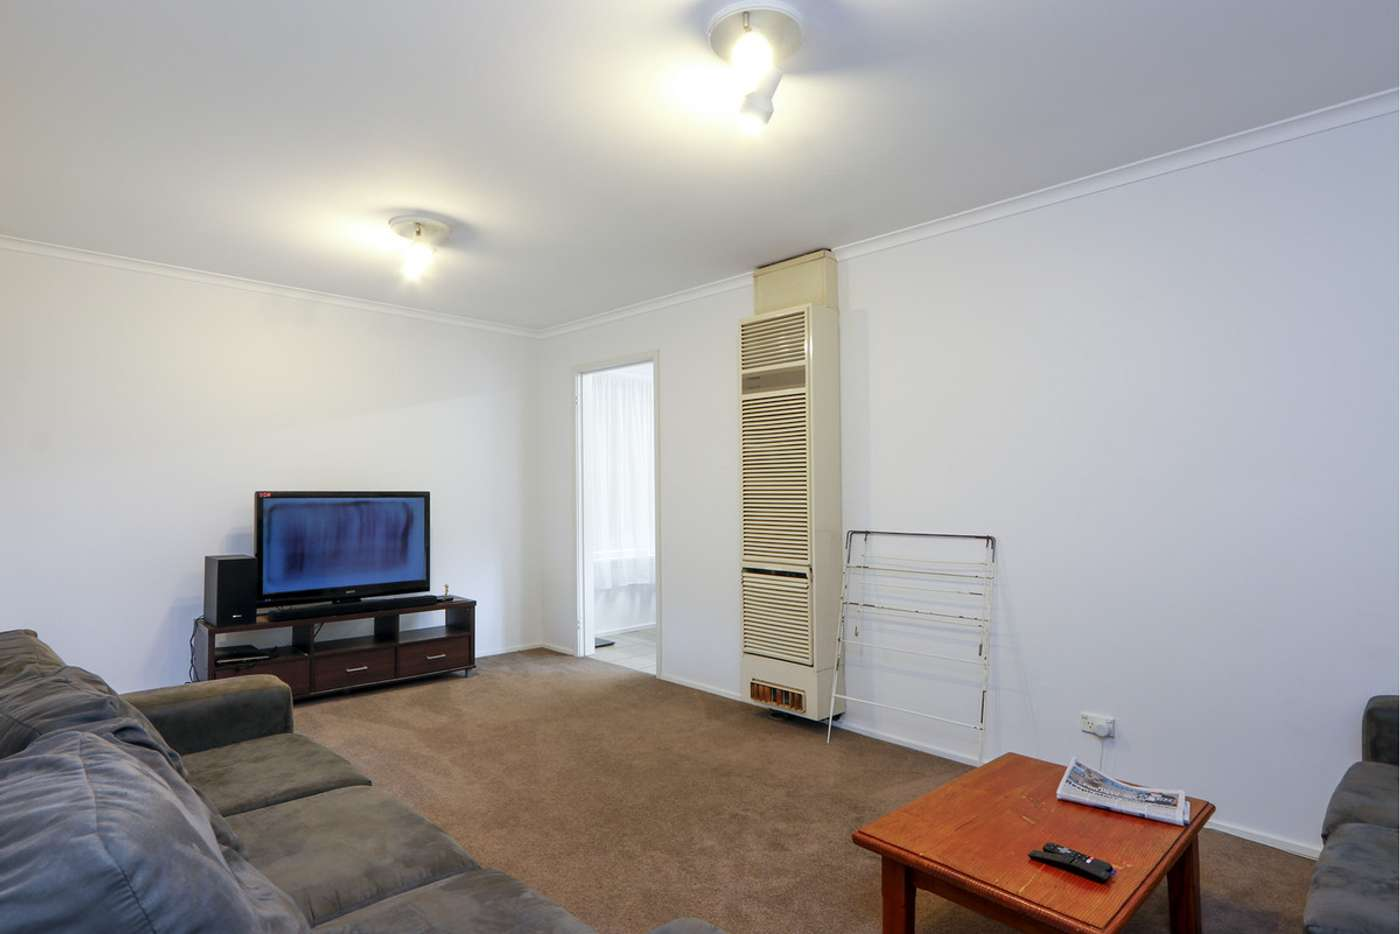 Fifth view of Homely house listing, 227 Dawson Street, Sale VIC 3850